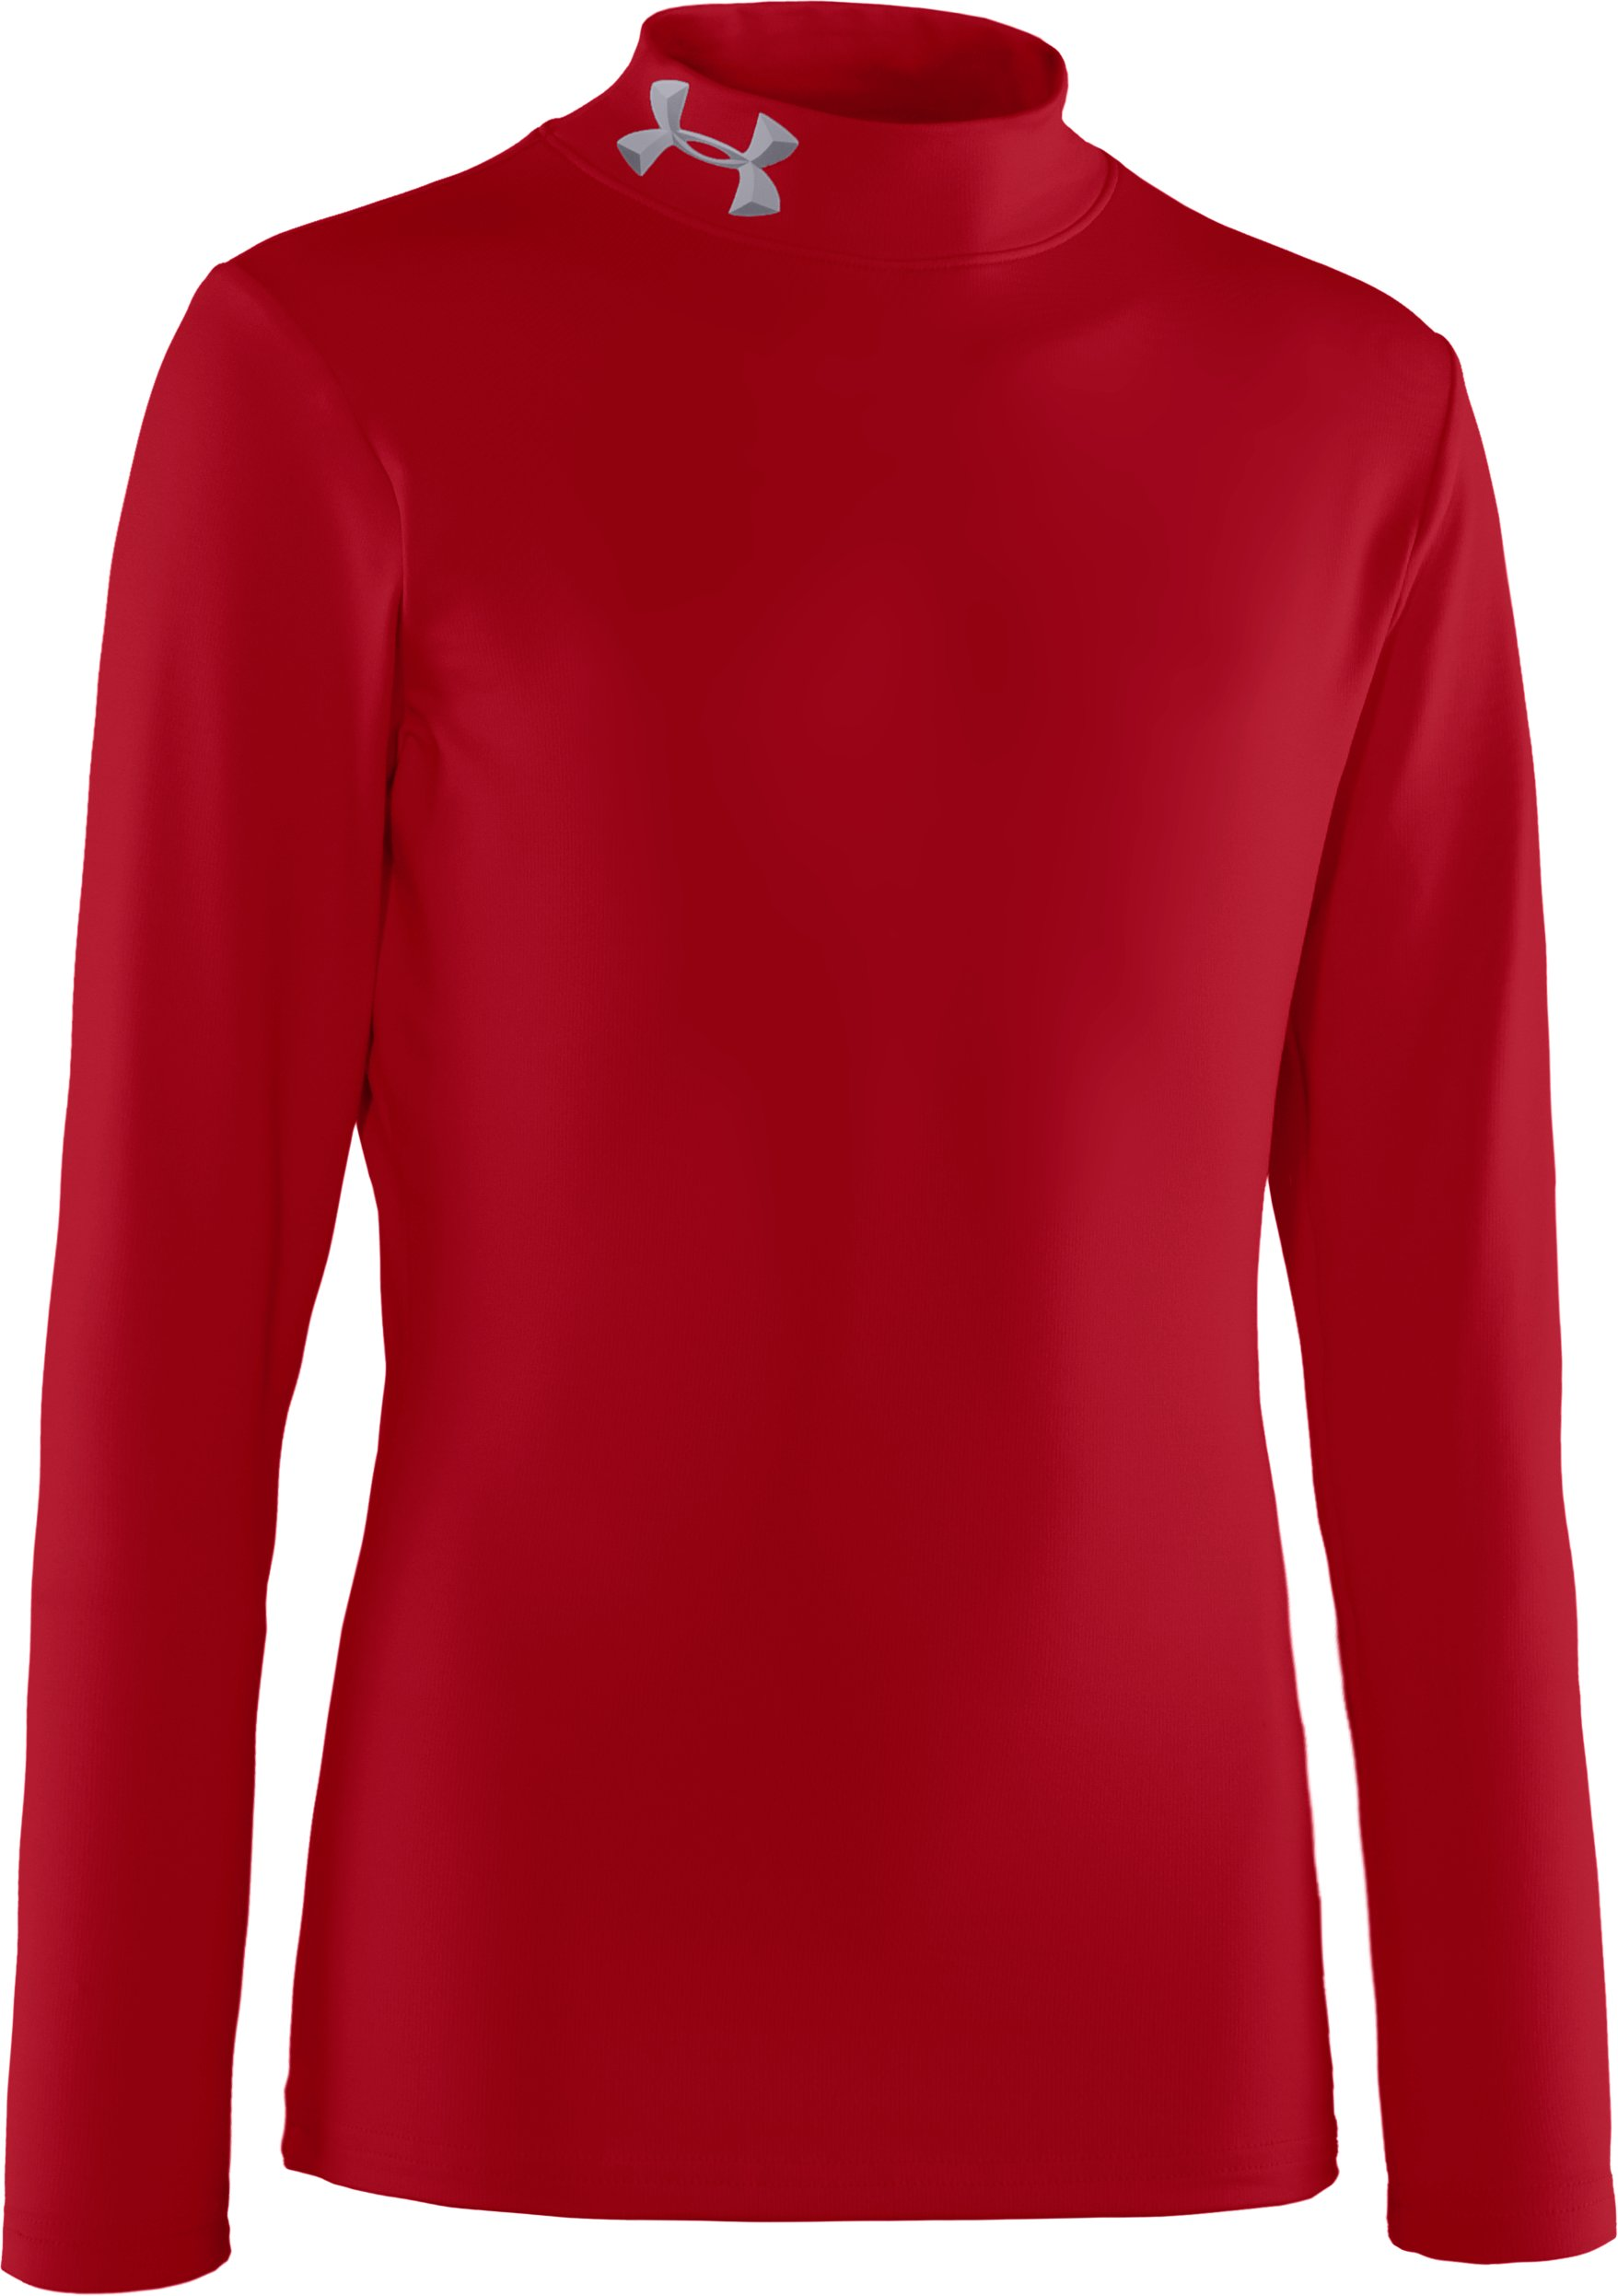 Boys' ColdGear® Evo Fitted Baselayer Mock, Red